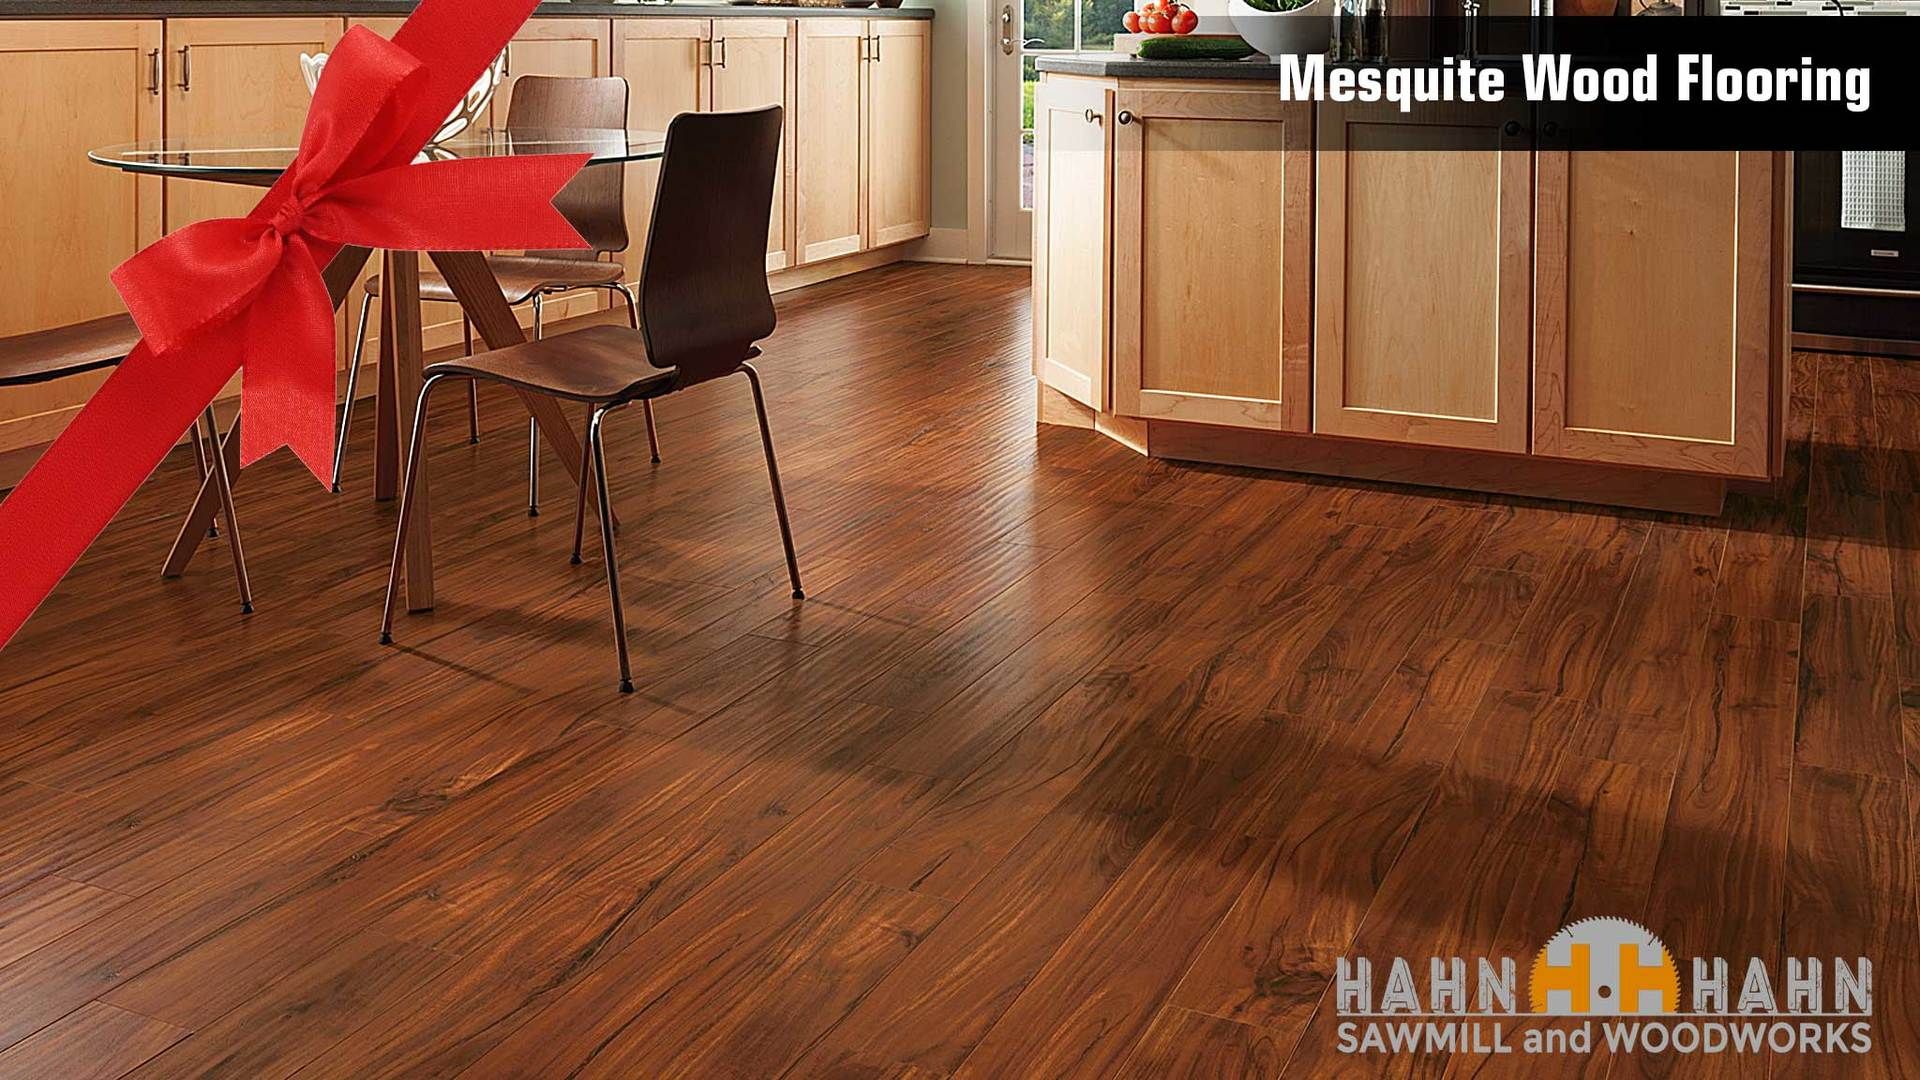 Mesquite flooring austin hardwood flooring austin wood flooring contact us today dailygadgetfo Choice Image